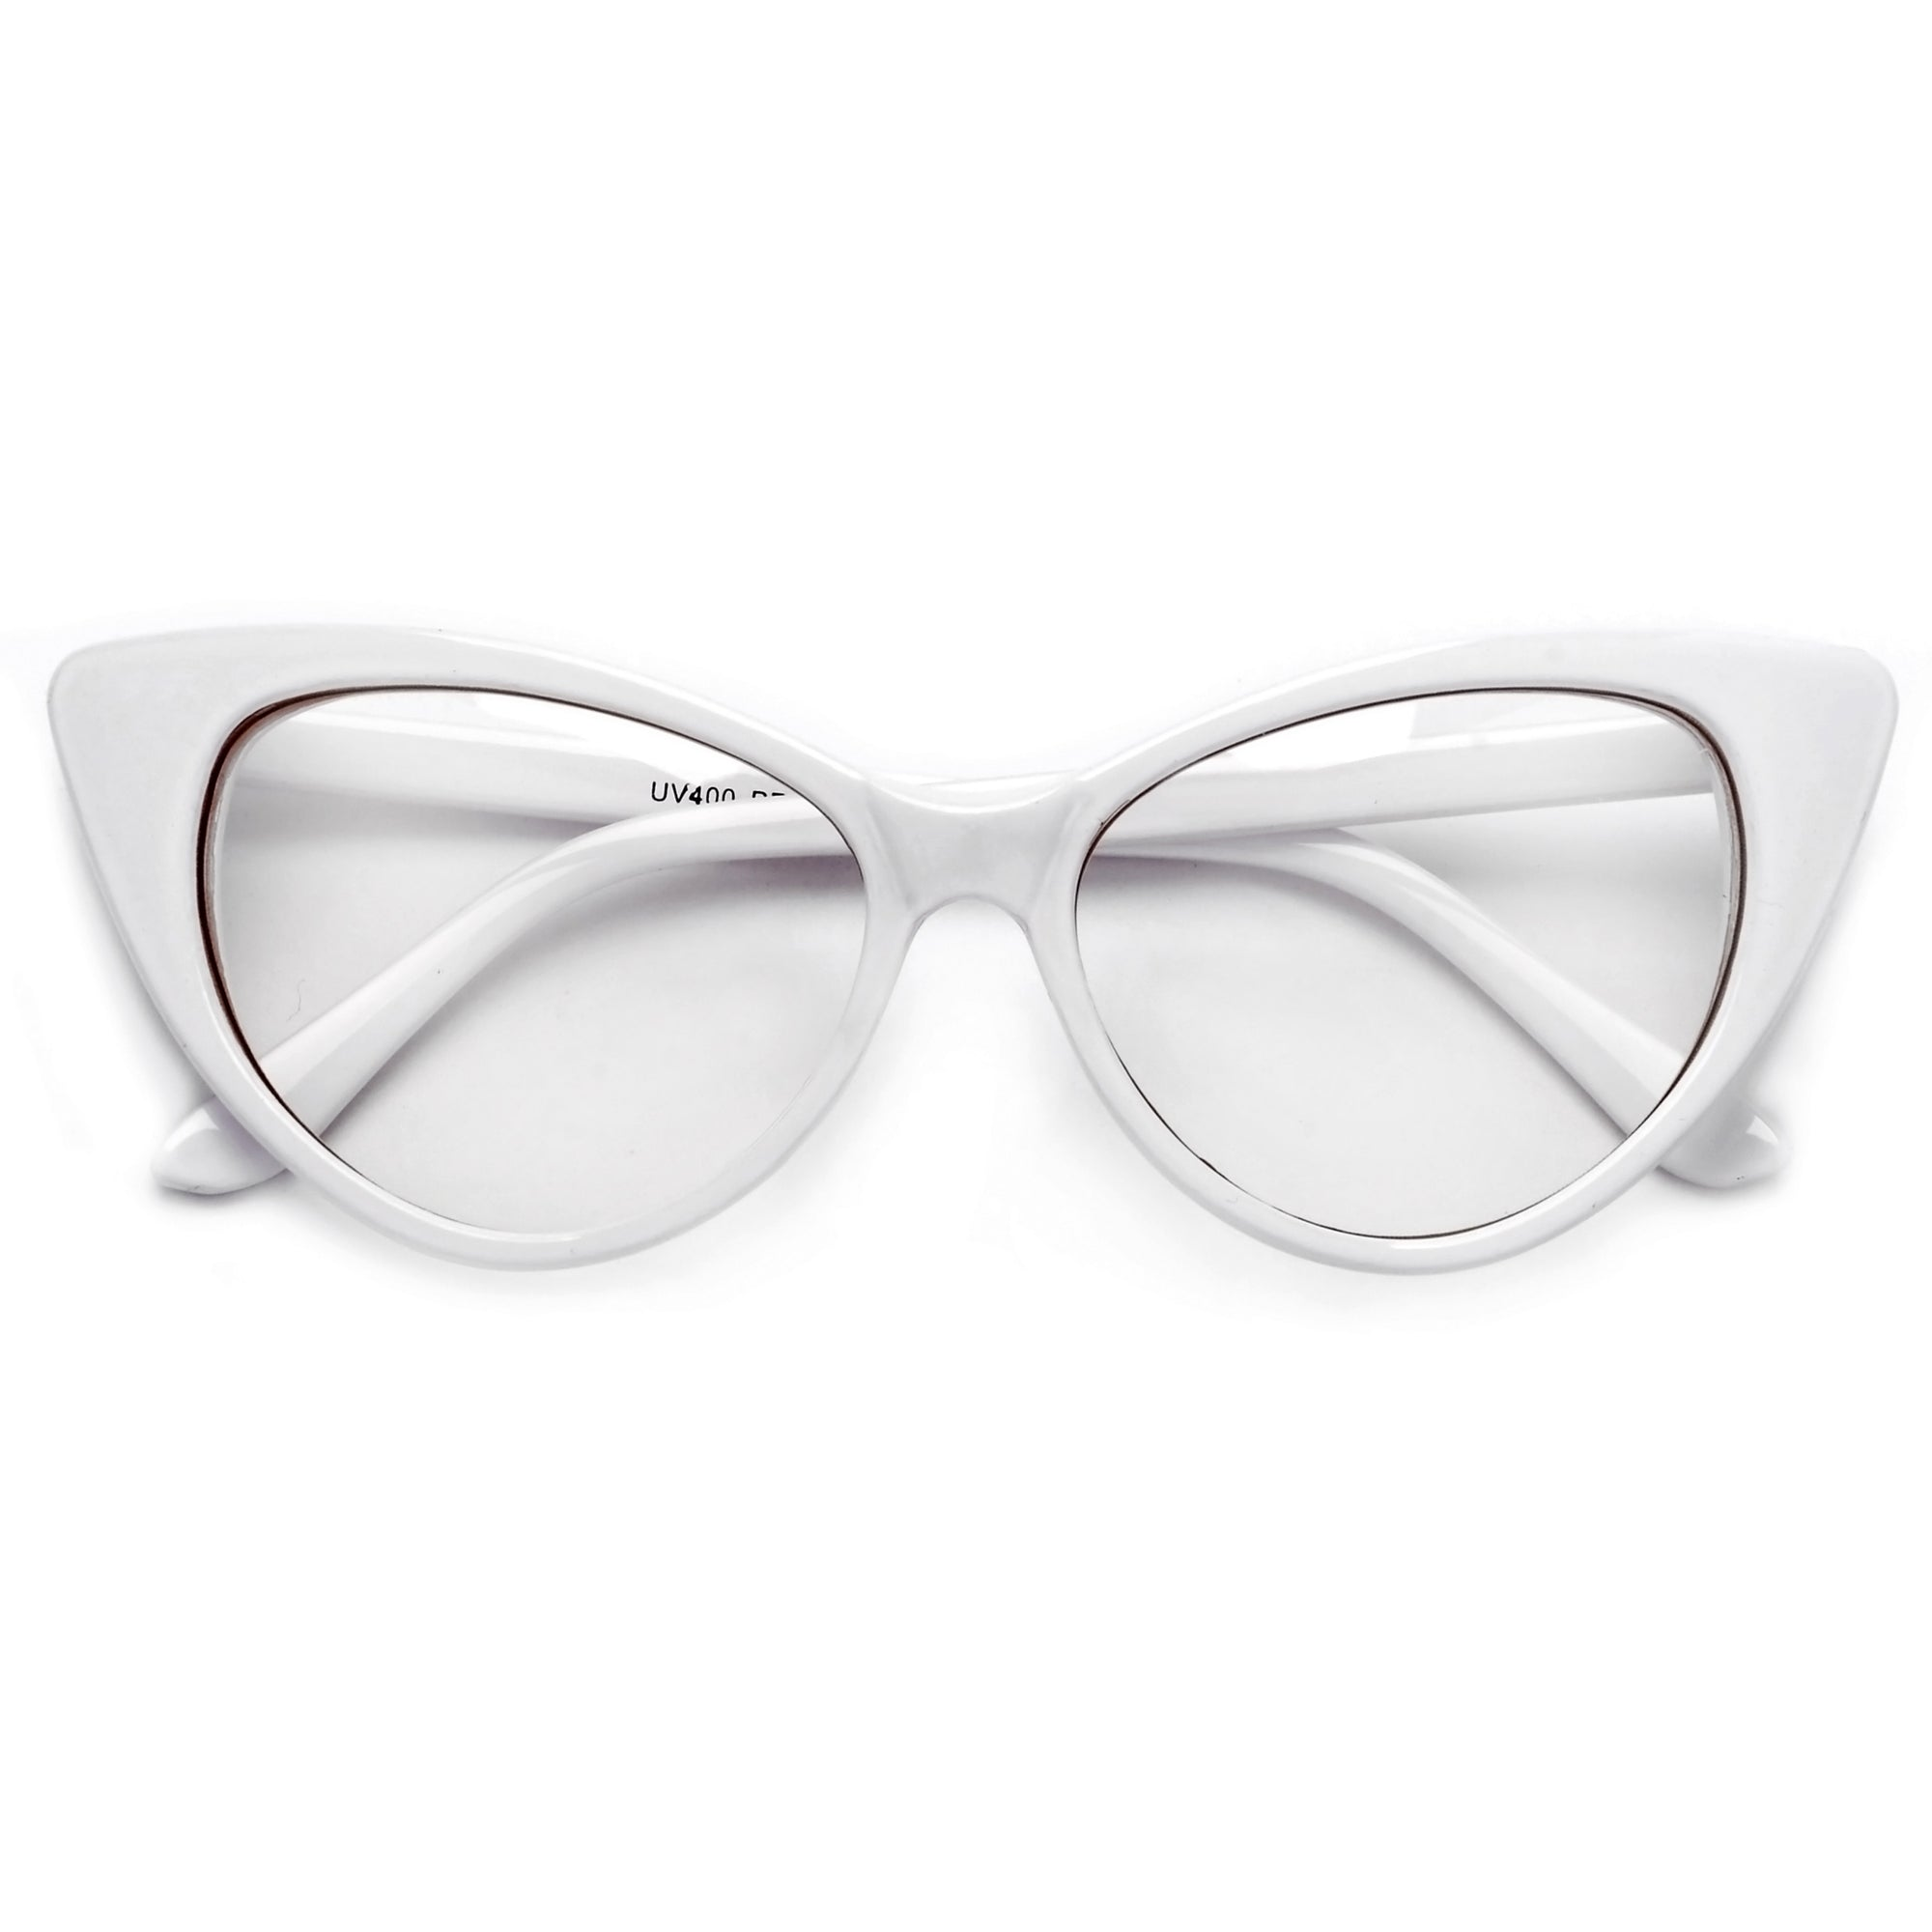 3016a58318 Super Cat Eye Vintage Inspired Fashion Mod Chic High Pointed Clear Eye Wear  Glasses